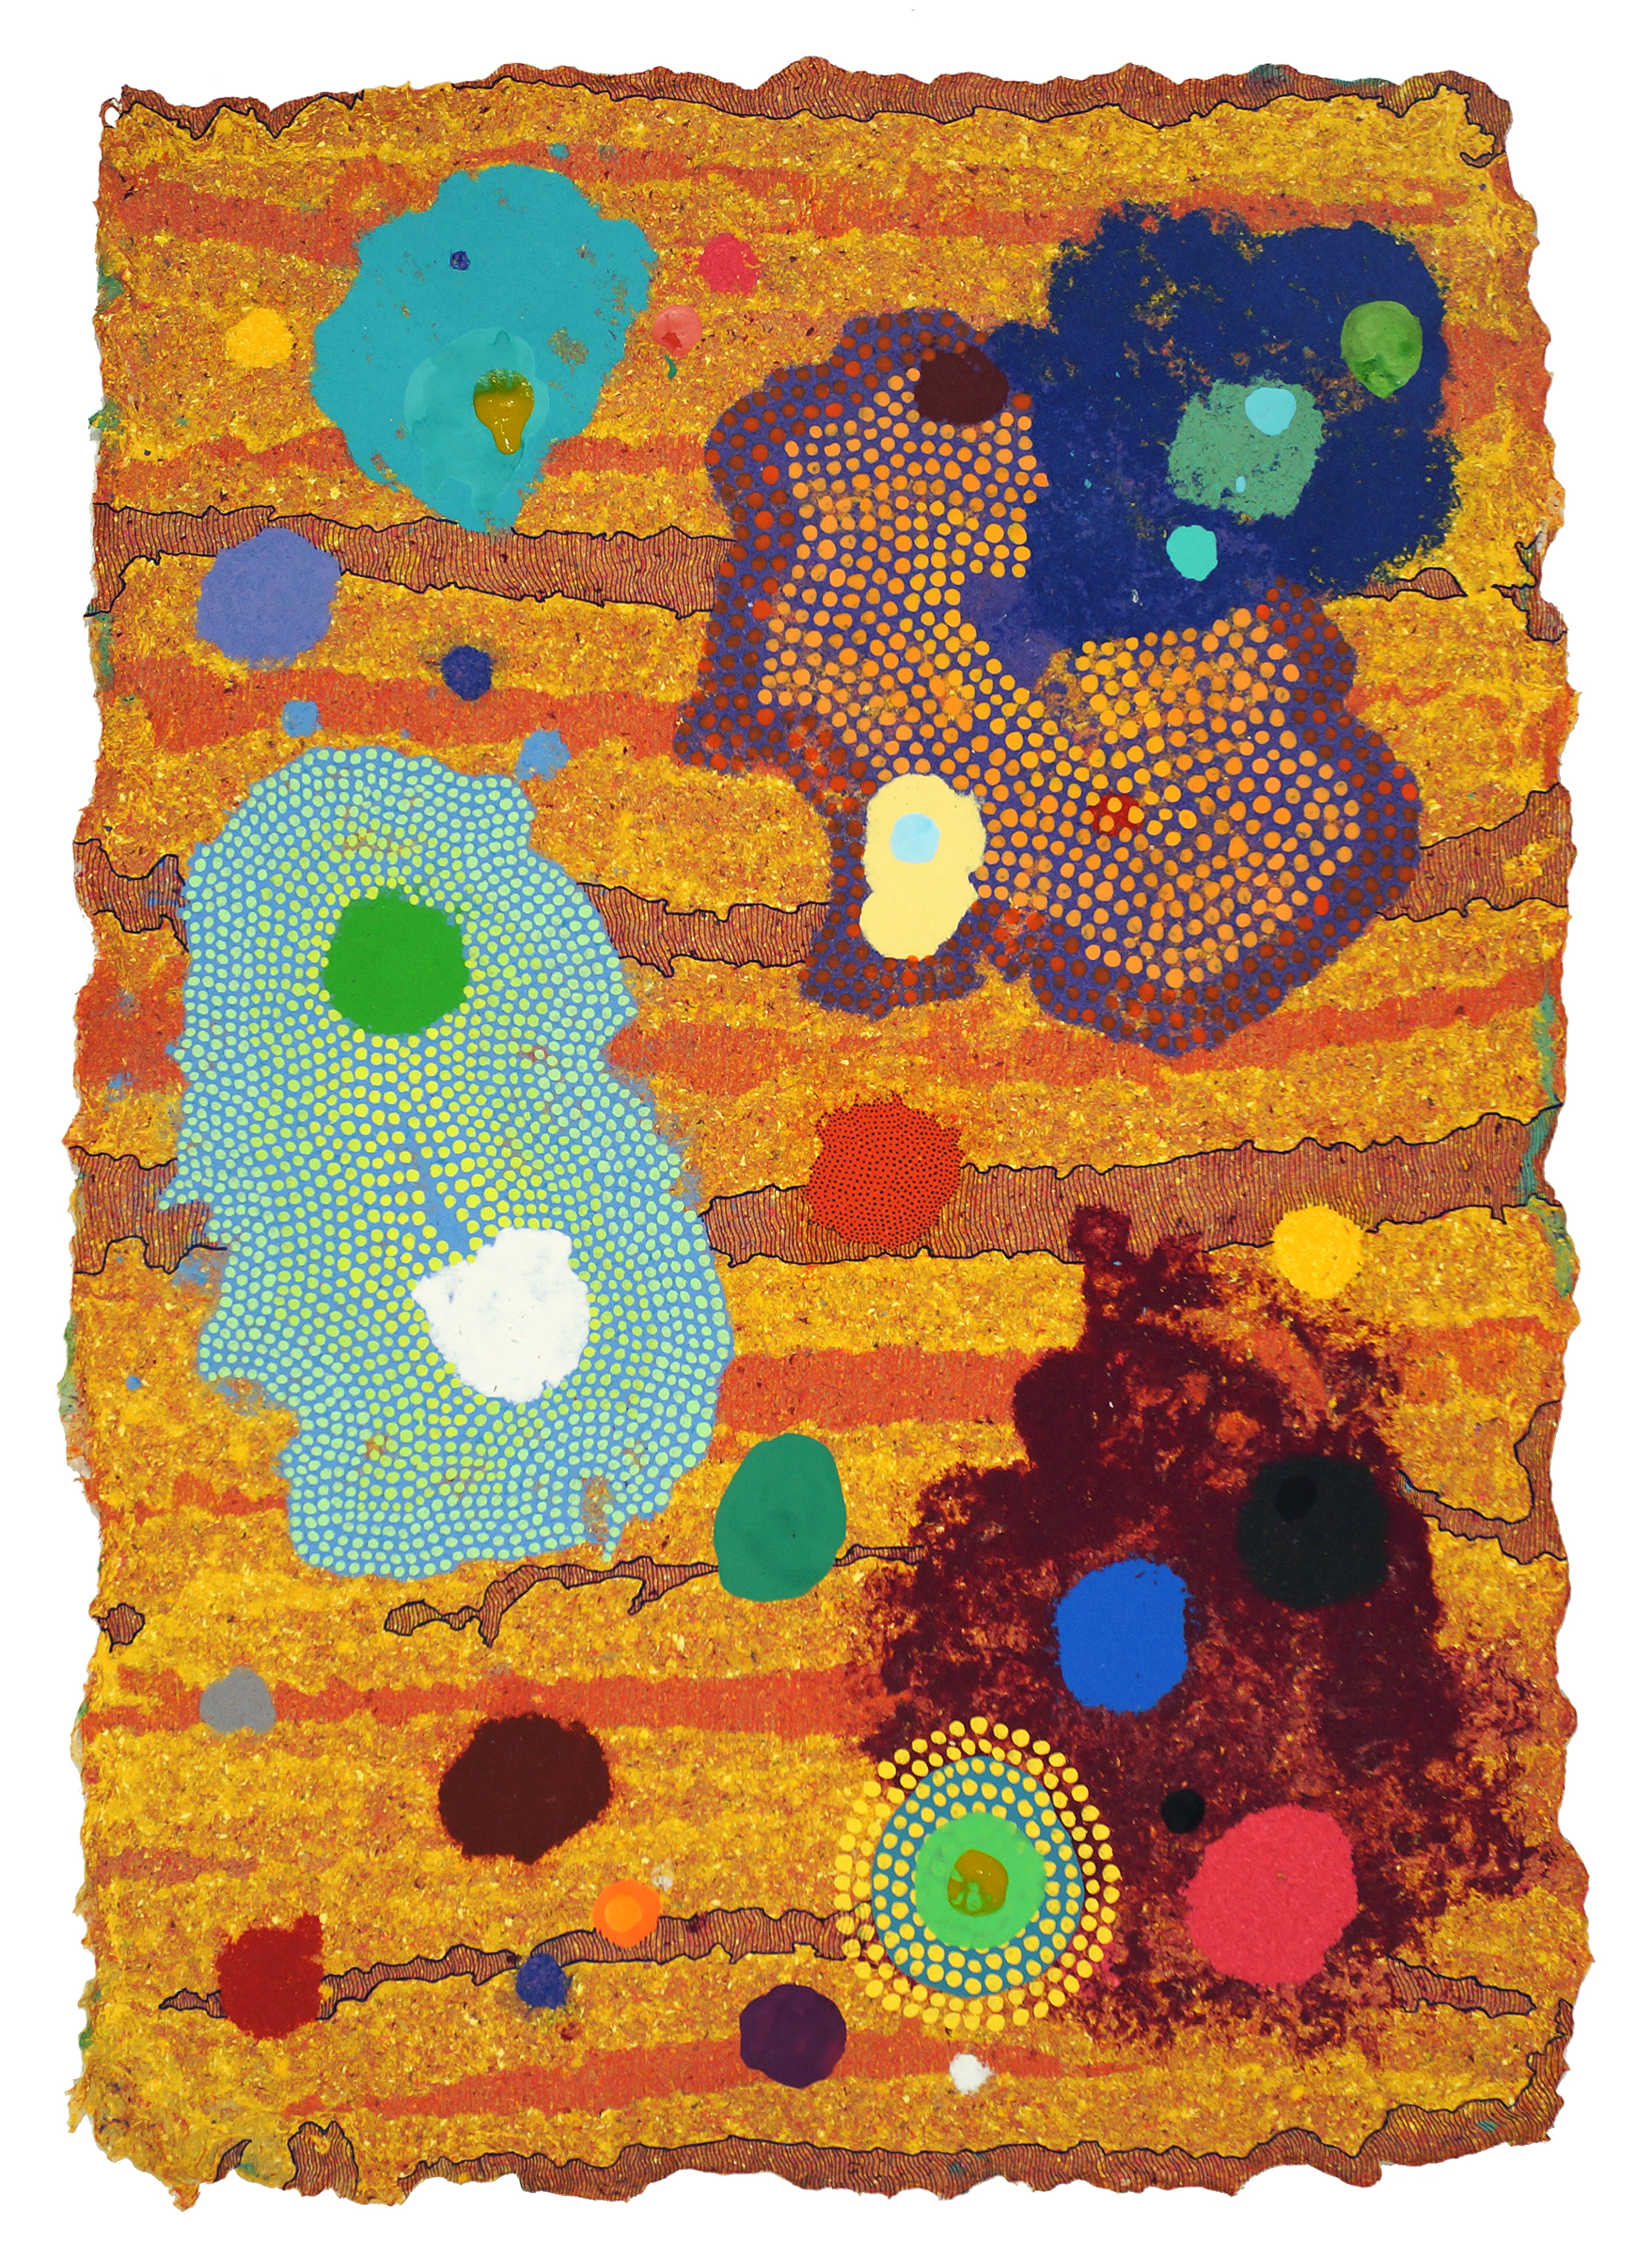 CHAD HAYWARD   Muon  Acrylic, pen, and pigmented cotton pulp on handmade paper, 23 x 32 1/2 inches